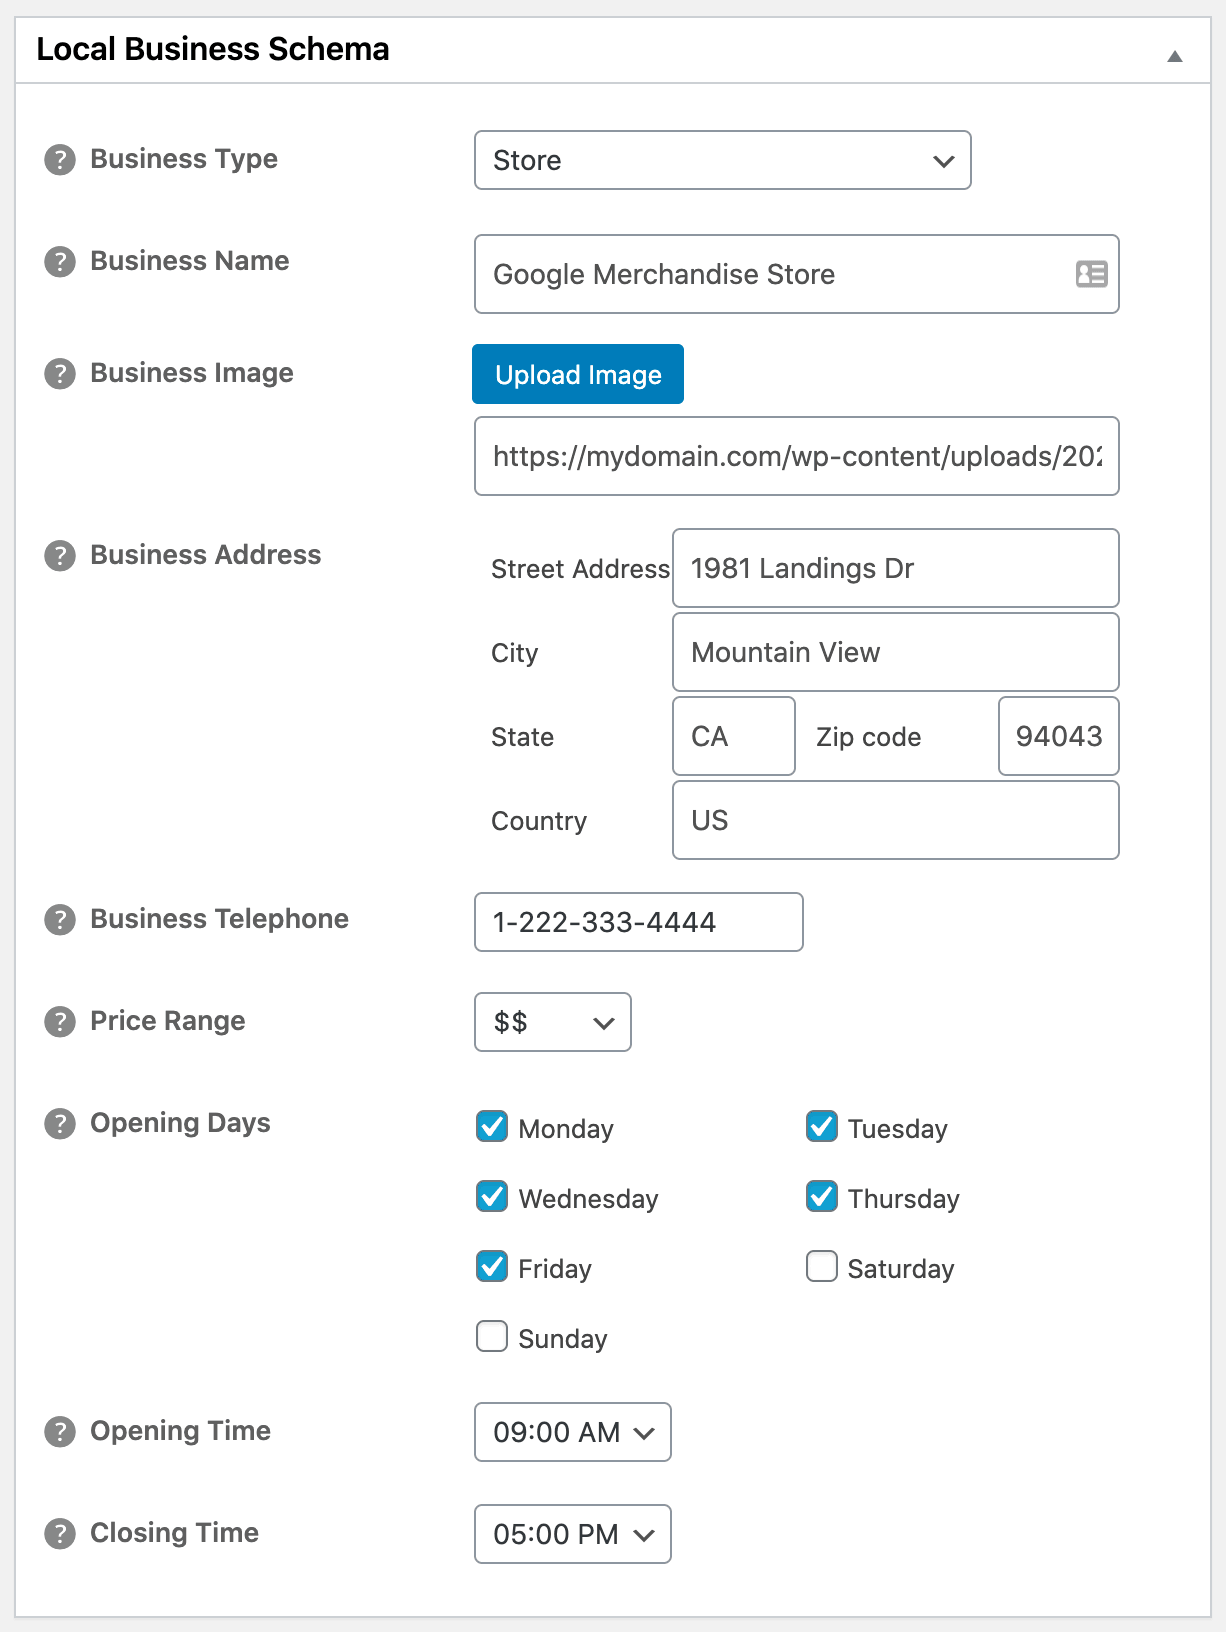 Local Business Schema settings in All in One SEO